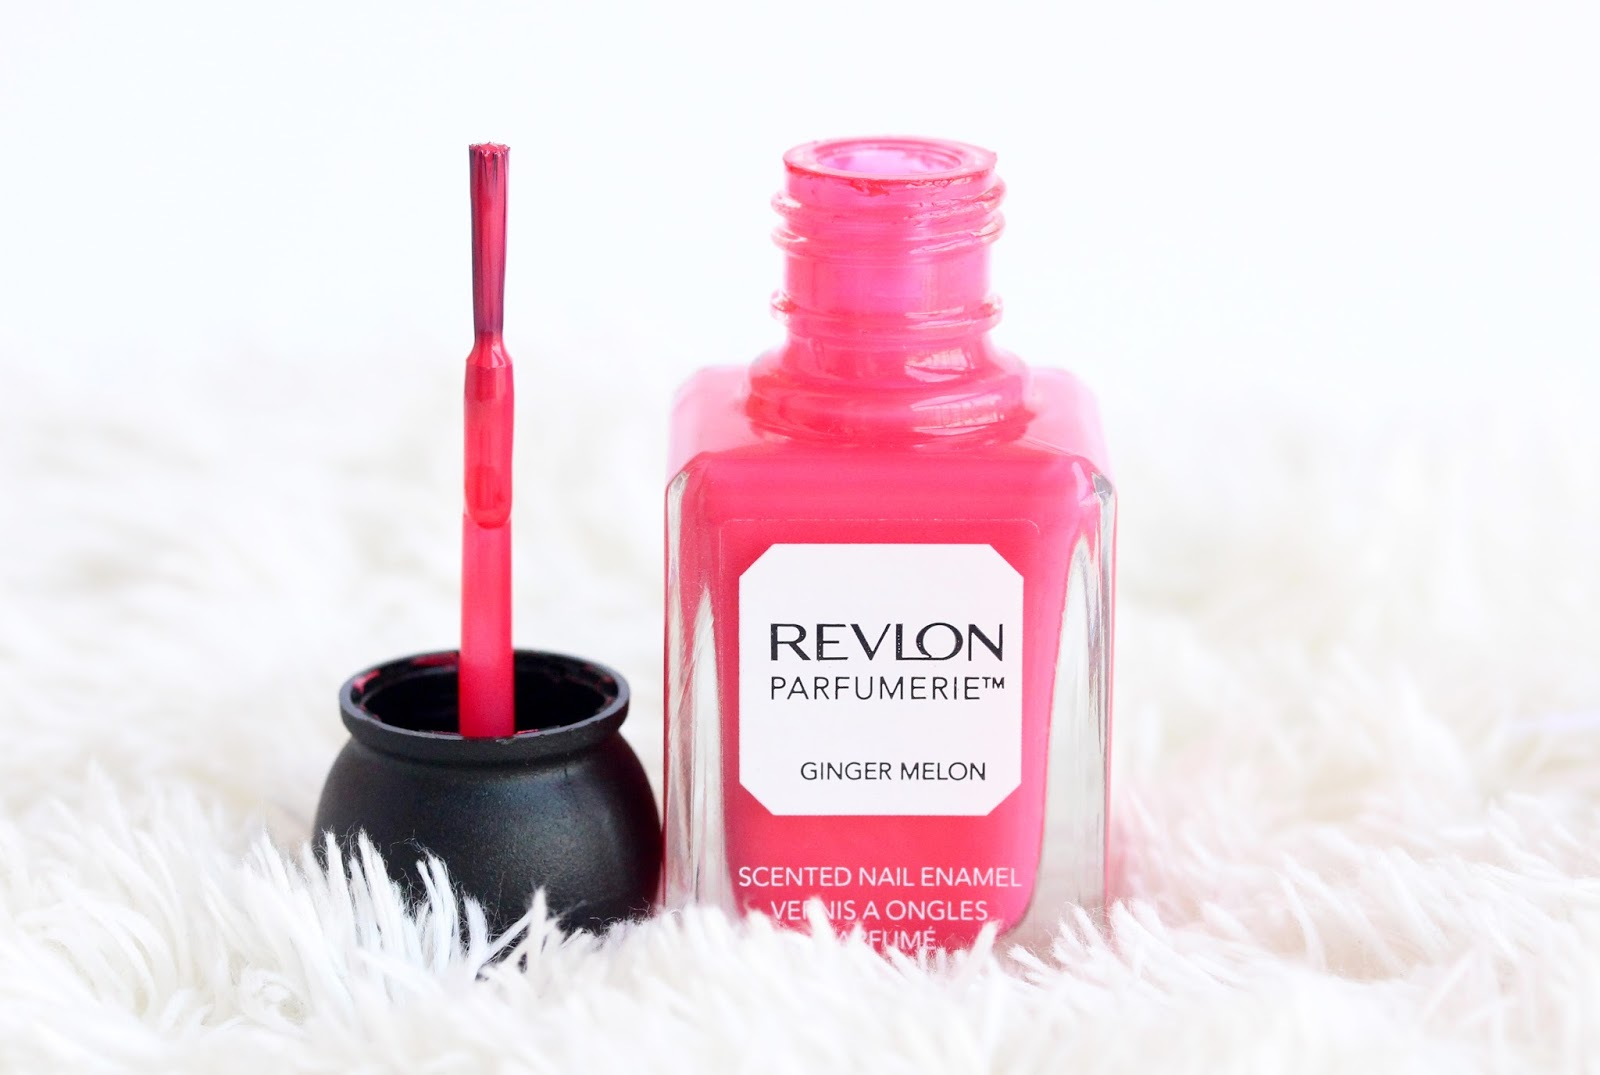 Revlon Perfumerie Nail Polish in Ginger Melon